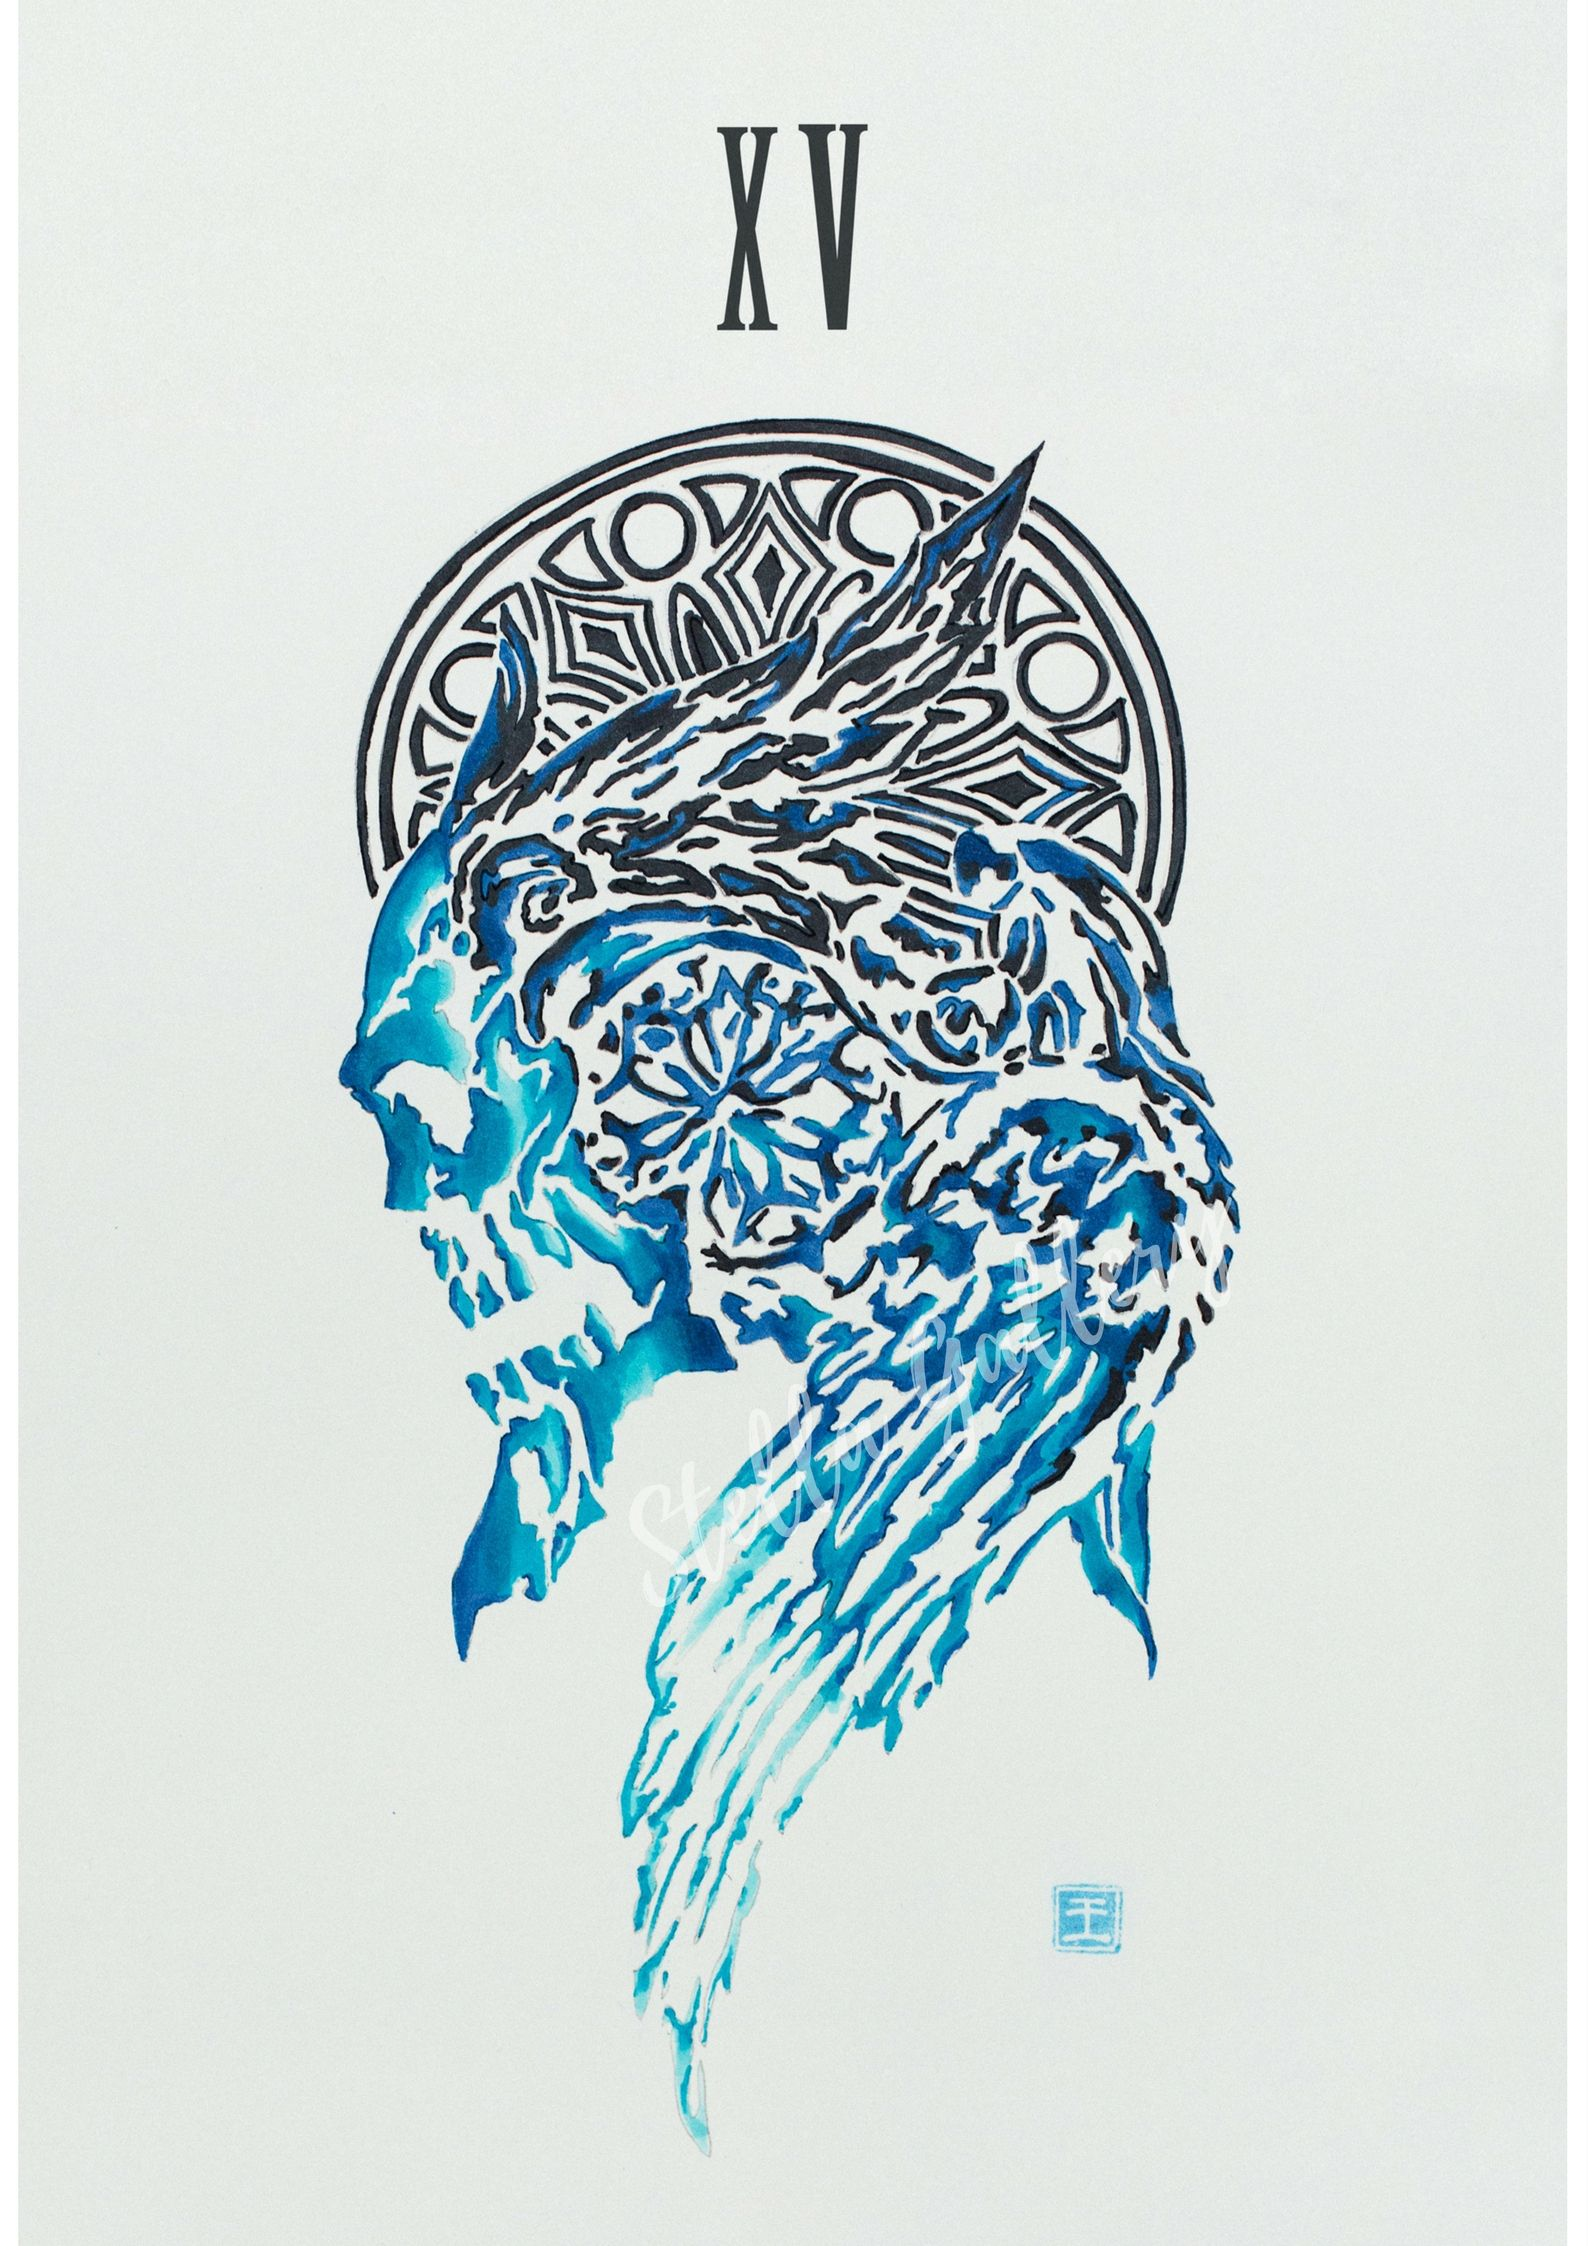 Final Fantasy Xv Ffxv Crest Of Lucis Art Illustration Poster With Markers Final Fantasy Xv Final Fantasy Tattoo Final Fantasy